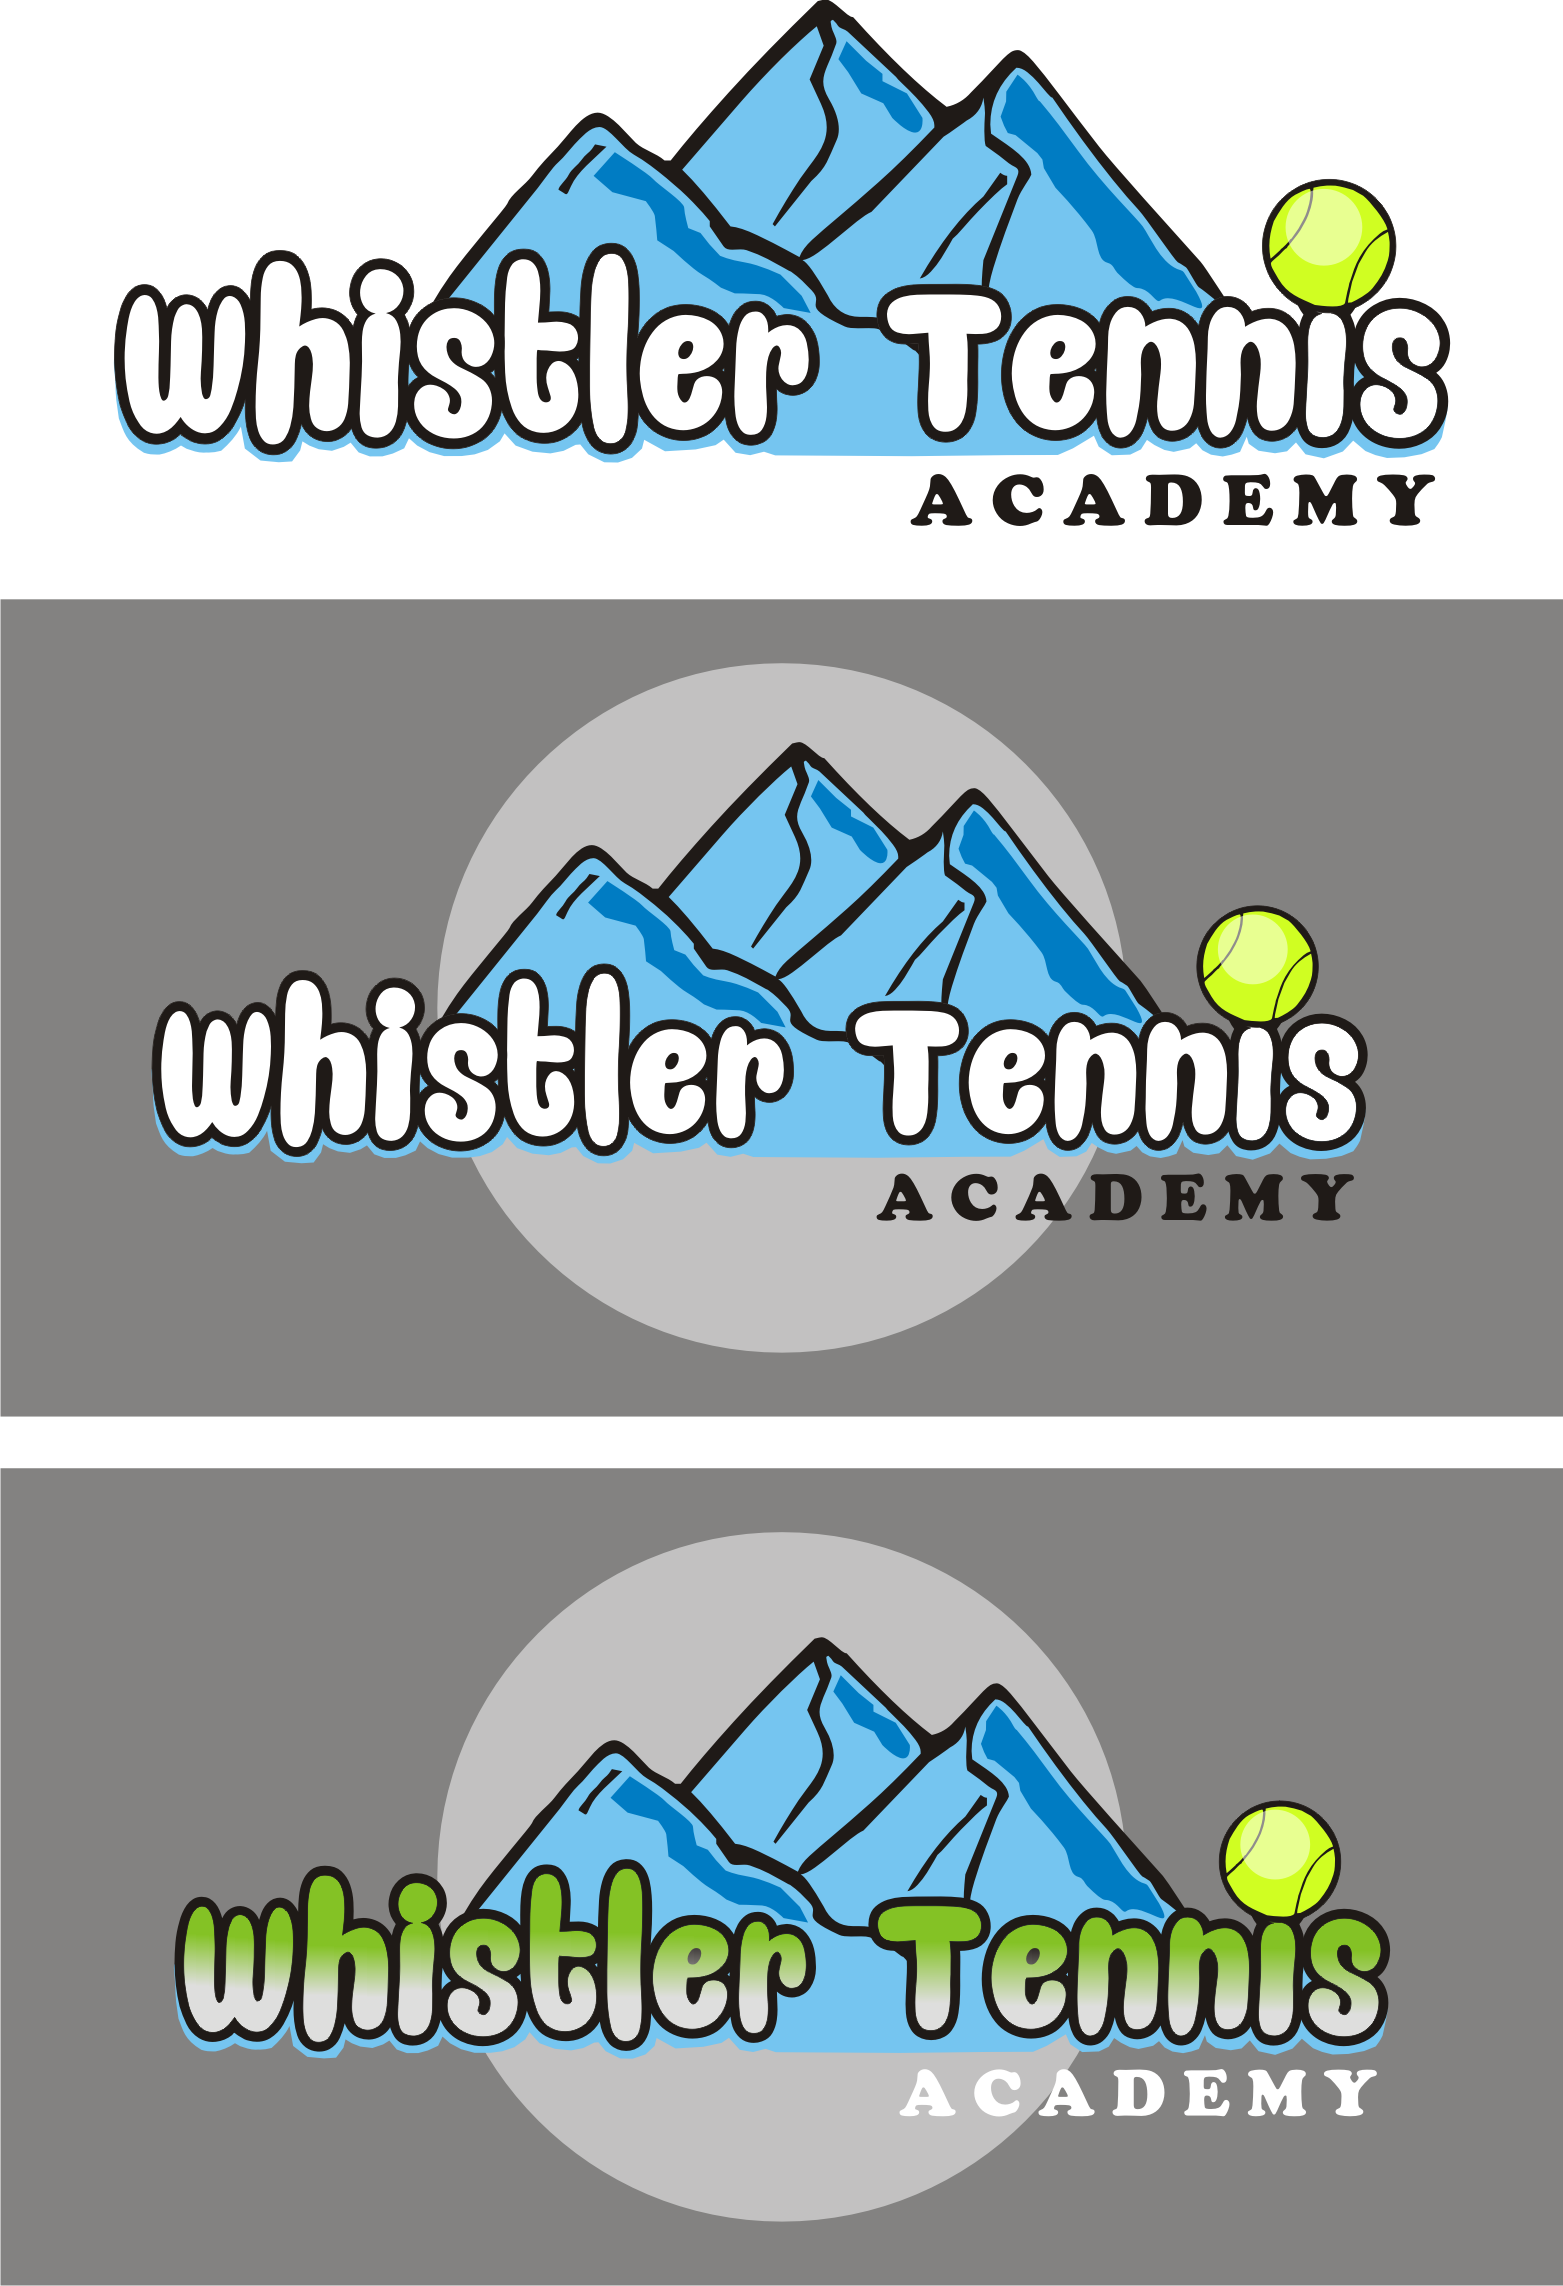 Logo Design by Nthus Nthis - Entry No. 5 in the Logo Design Contest Imaginative Logo Design for Whistler Tennis Academy.